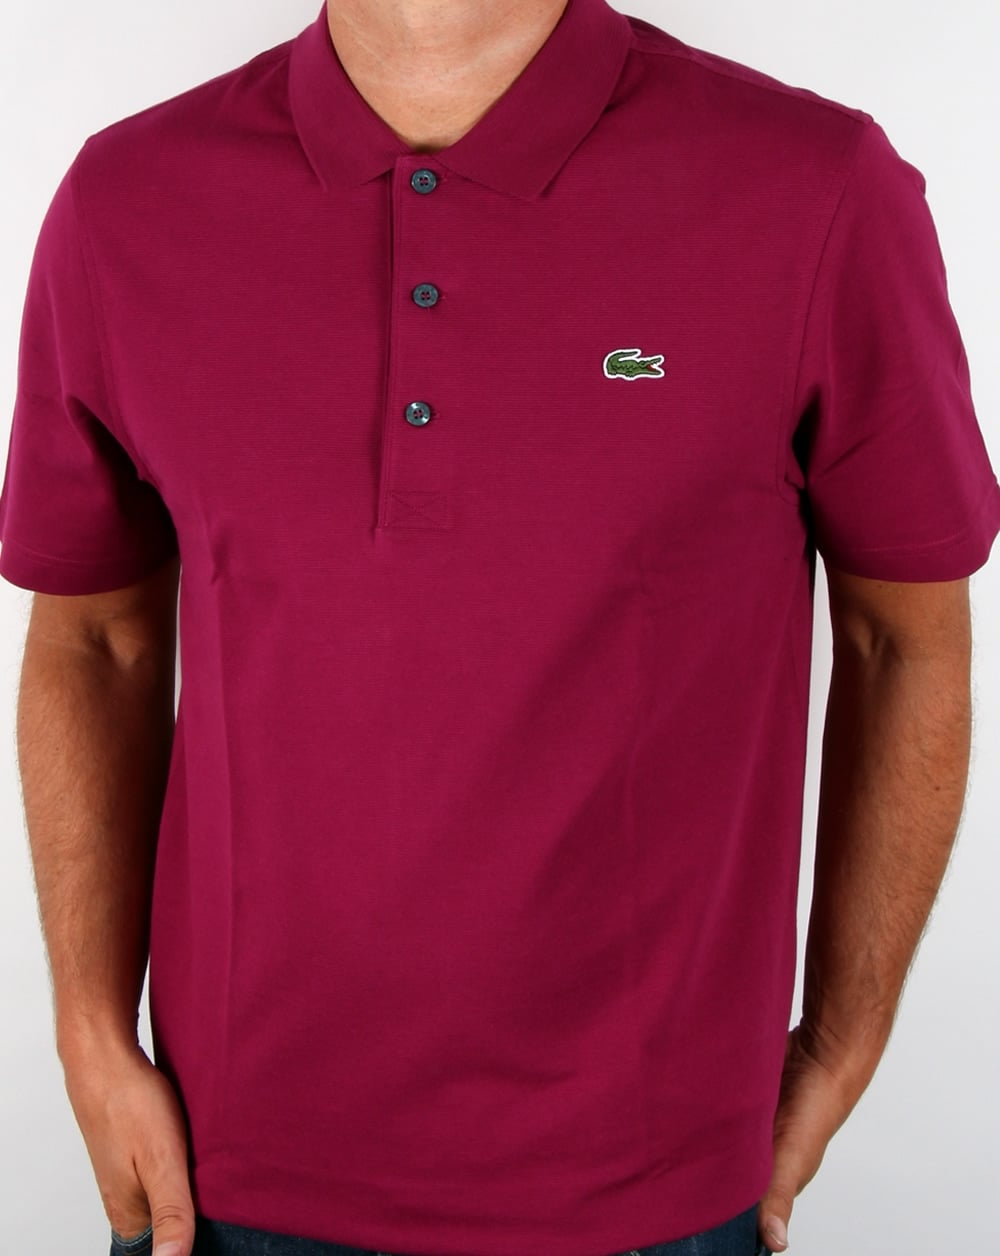 38b6bed839 Lacoste Lacoste Polo Shirt Vineyard